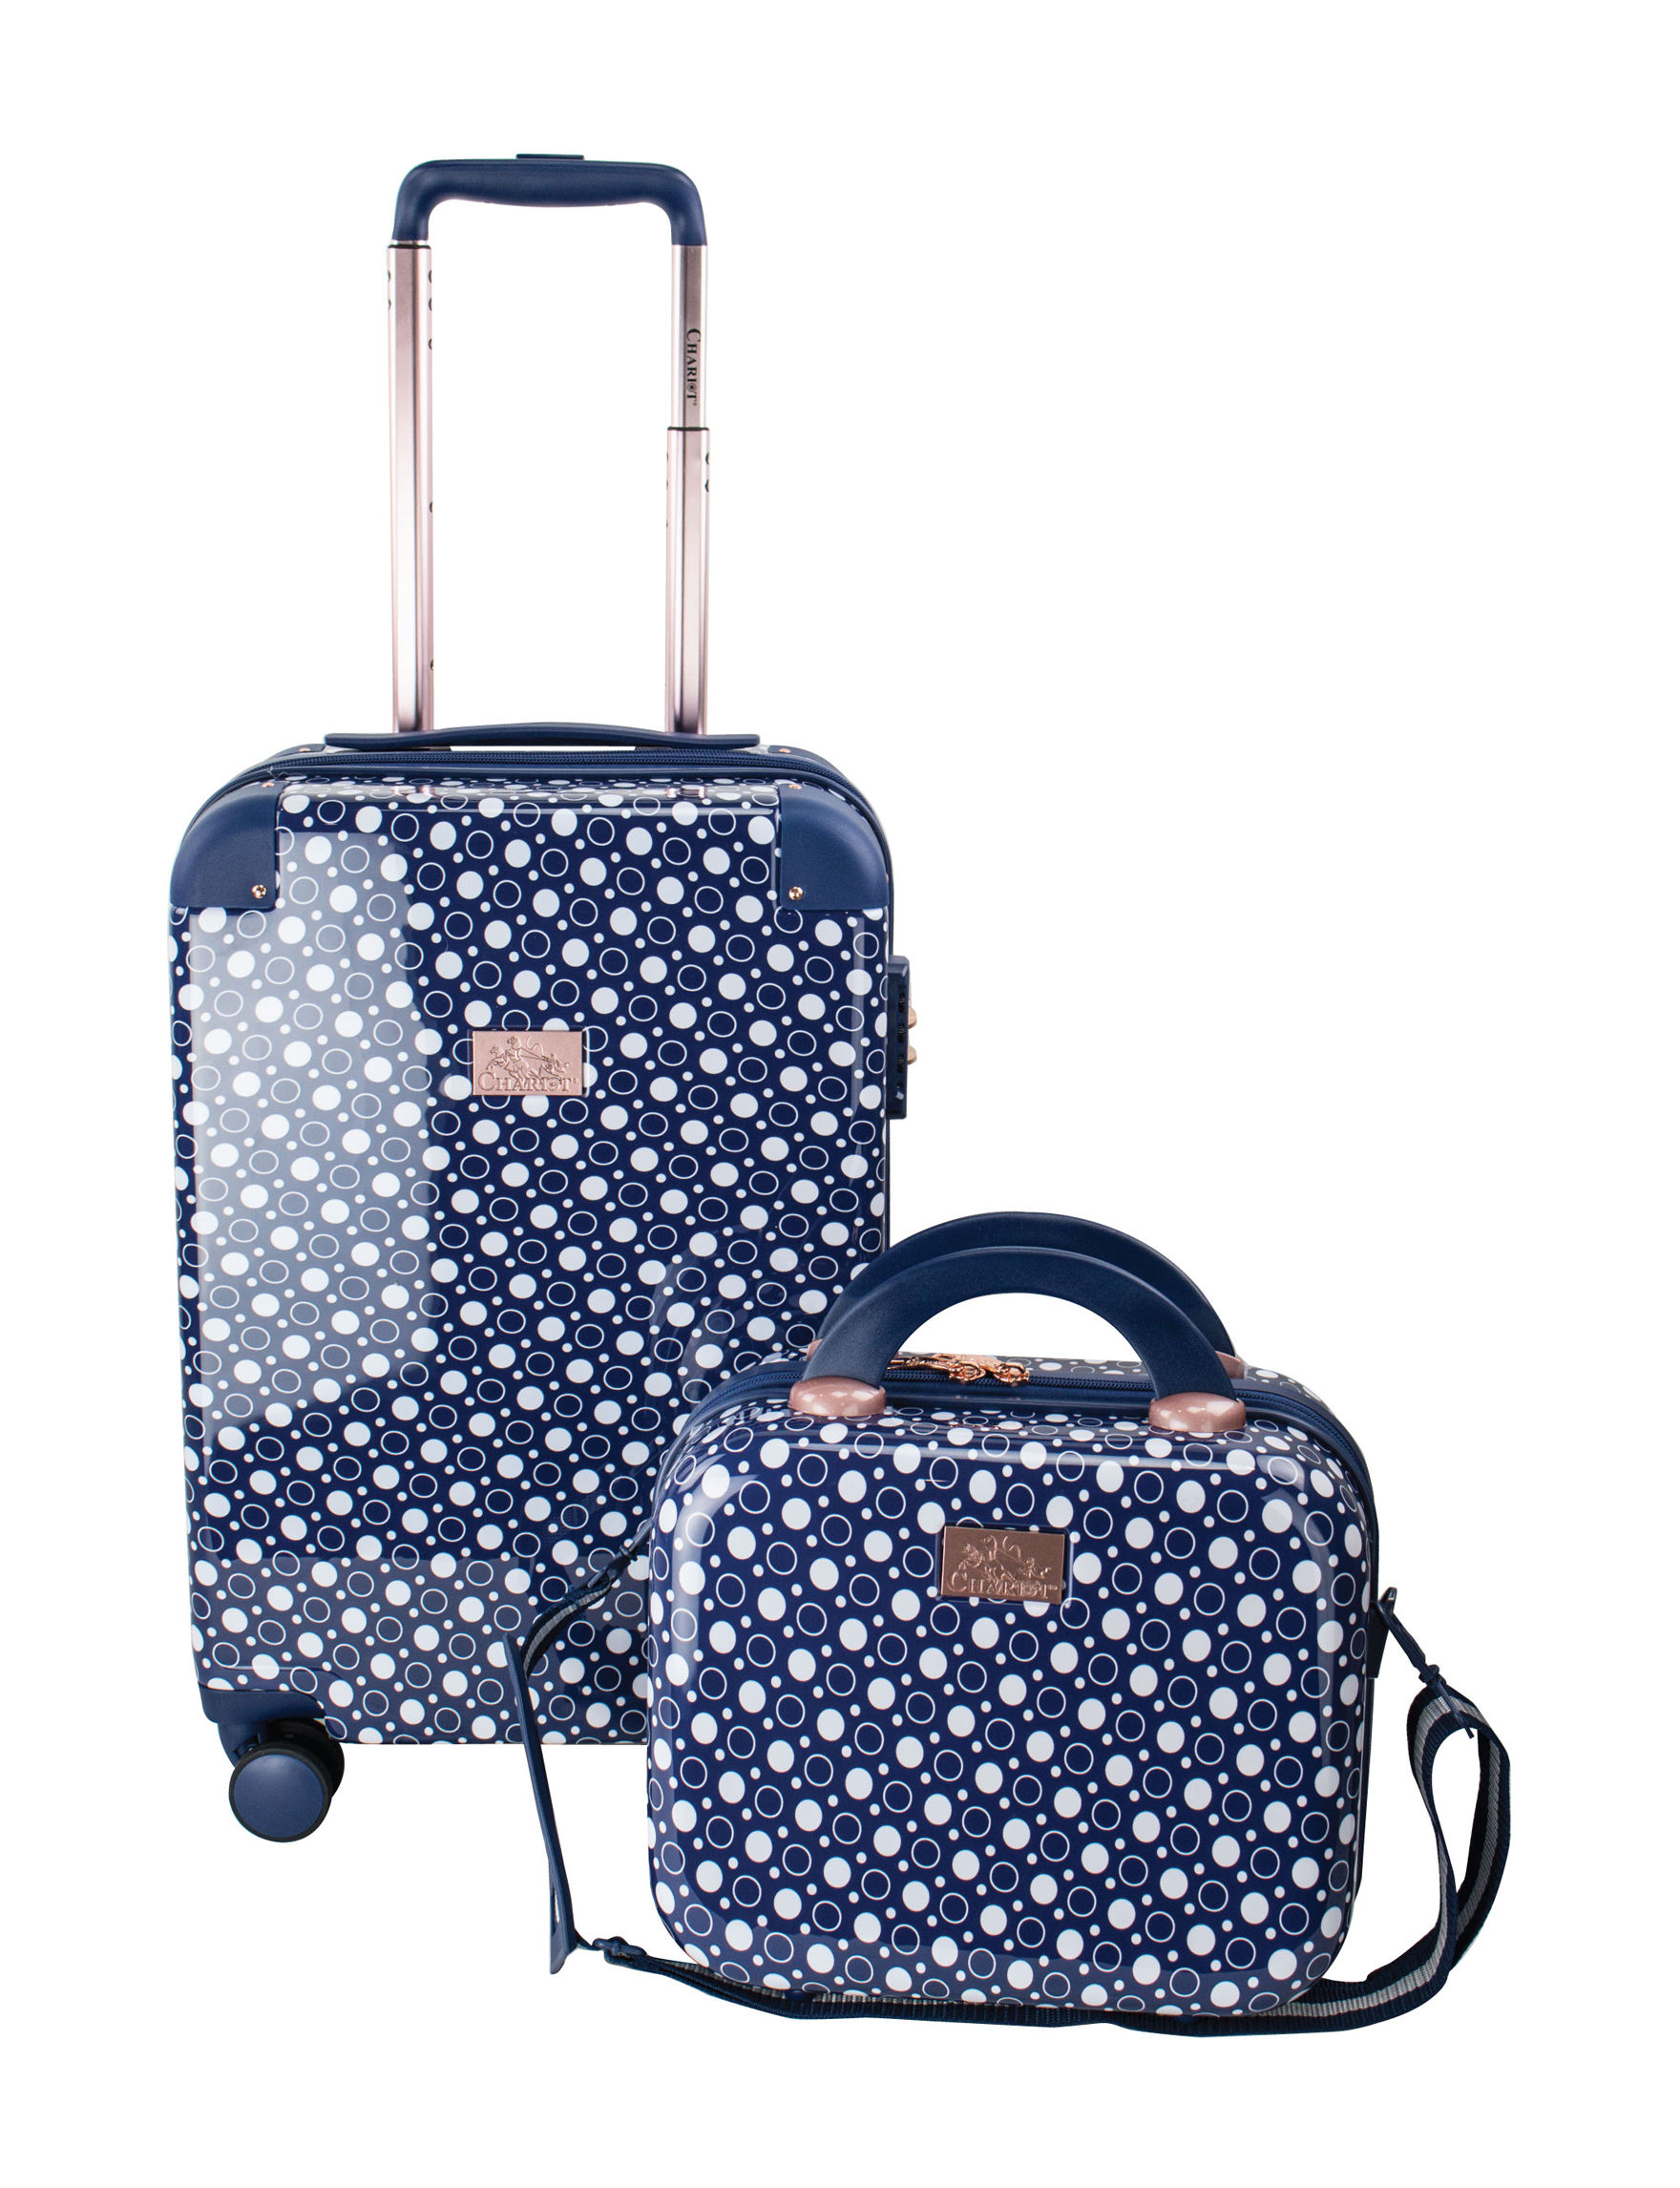 Chariot Travelware Blue / Dots Hardside Upright Spinners